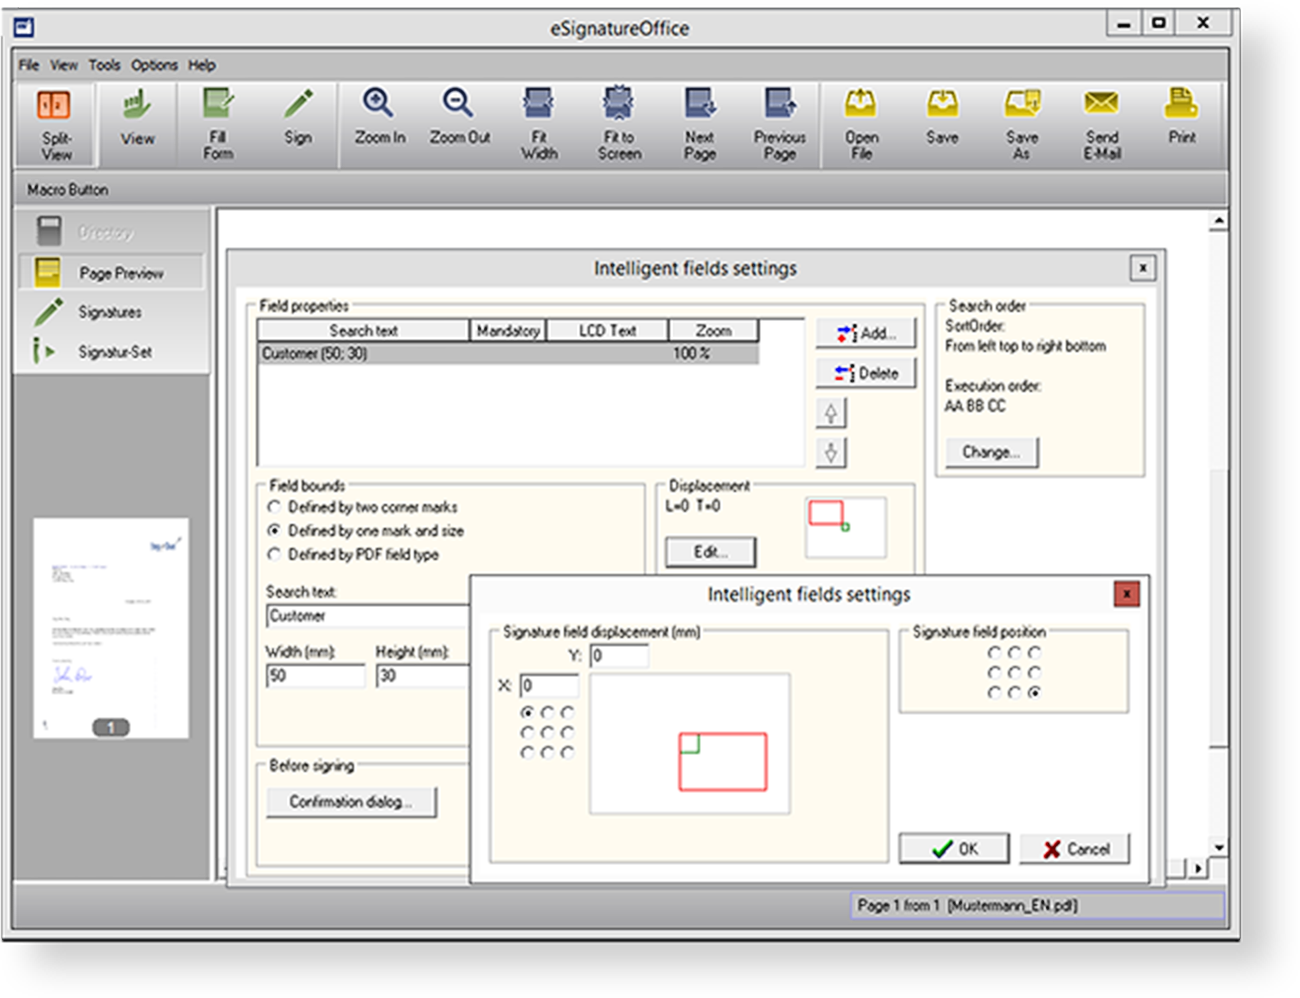 eSignatureOffice-Signature-solution-Signature-software-eSignatureOffice-2